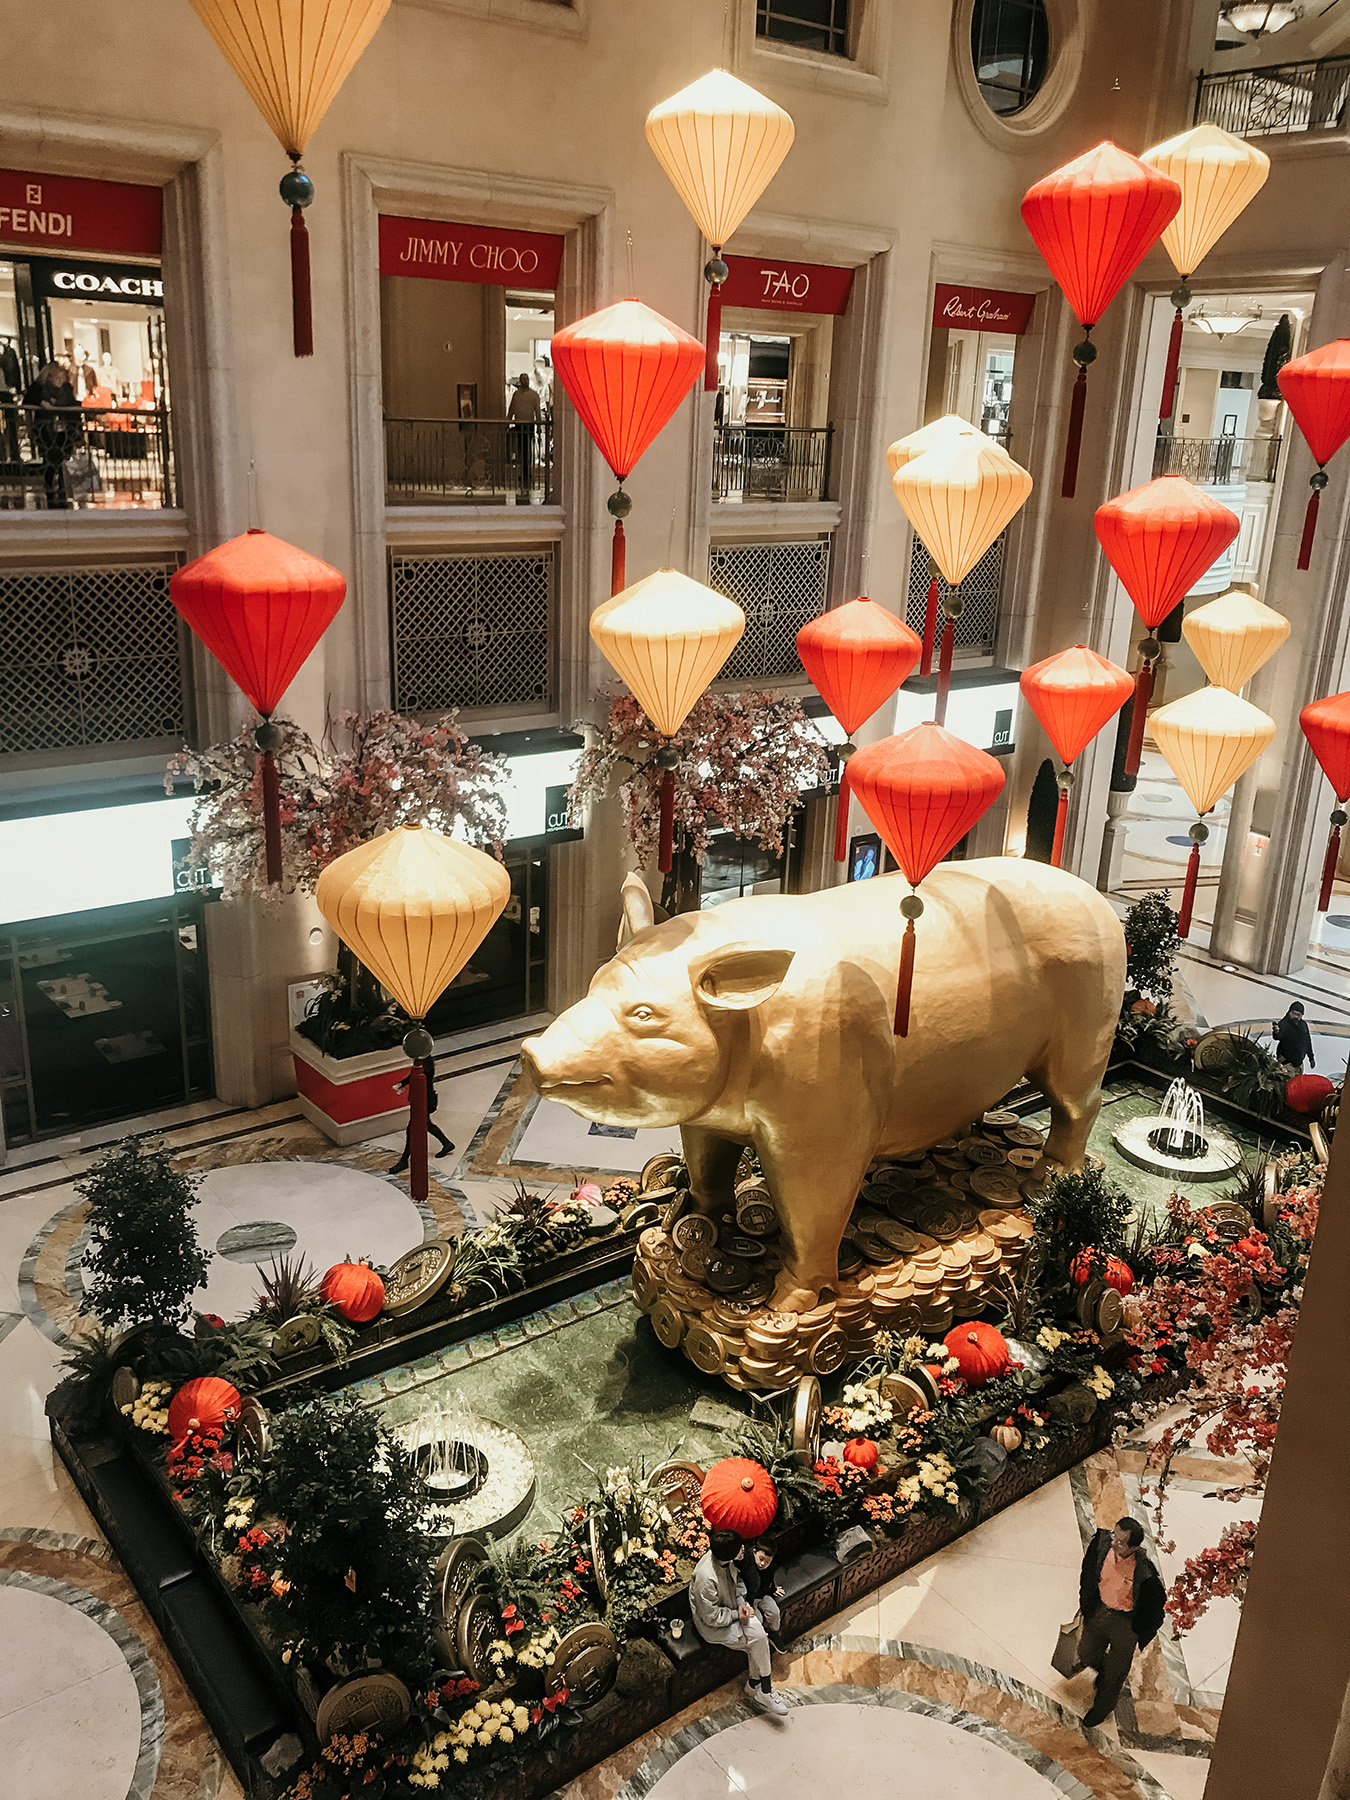 Giant golden pig decoration at the Venetian Hotel in Las Vegas for Chinese New Year's